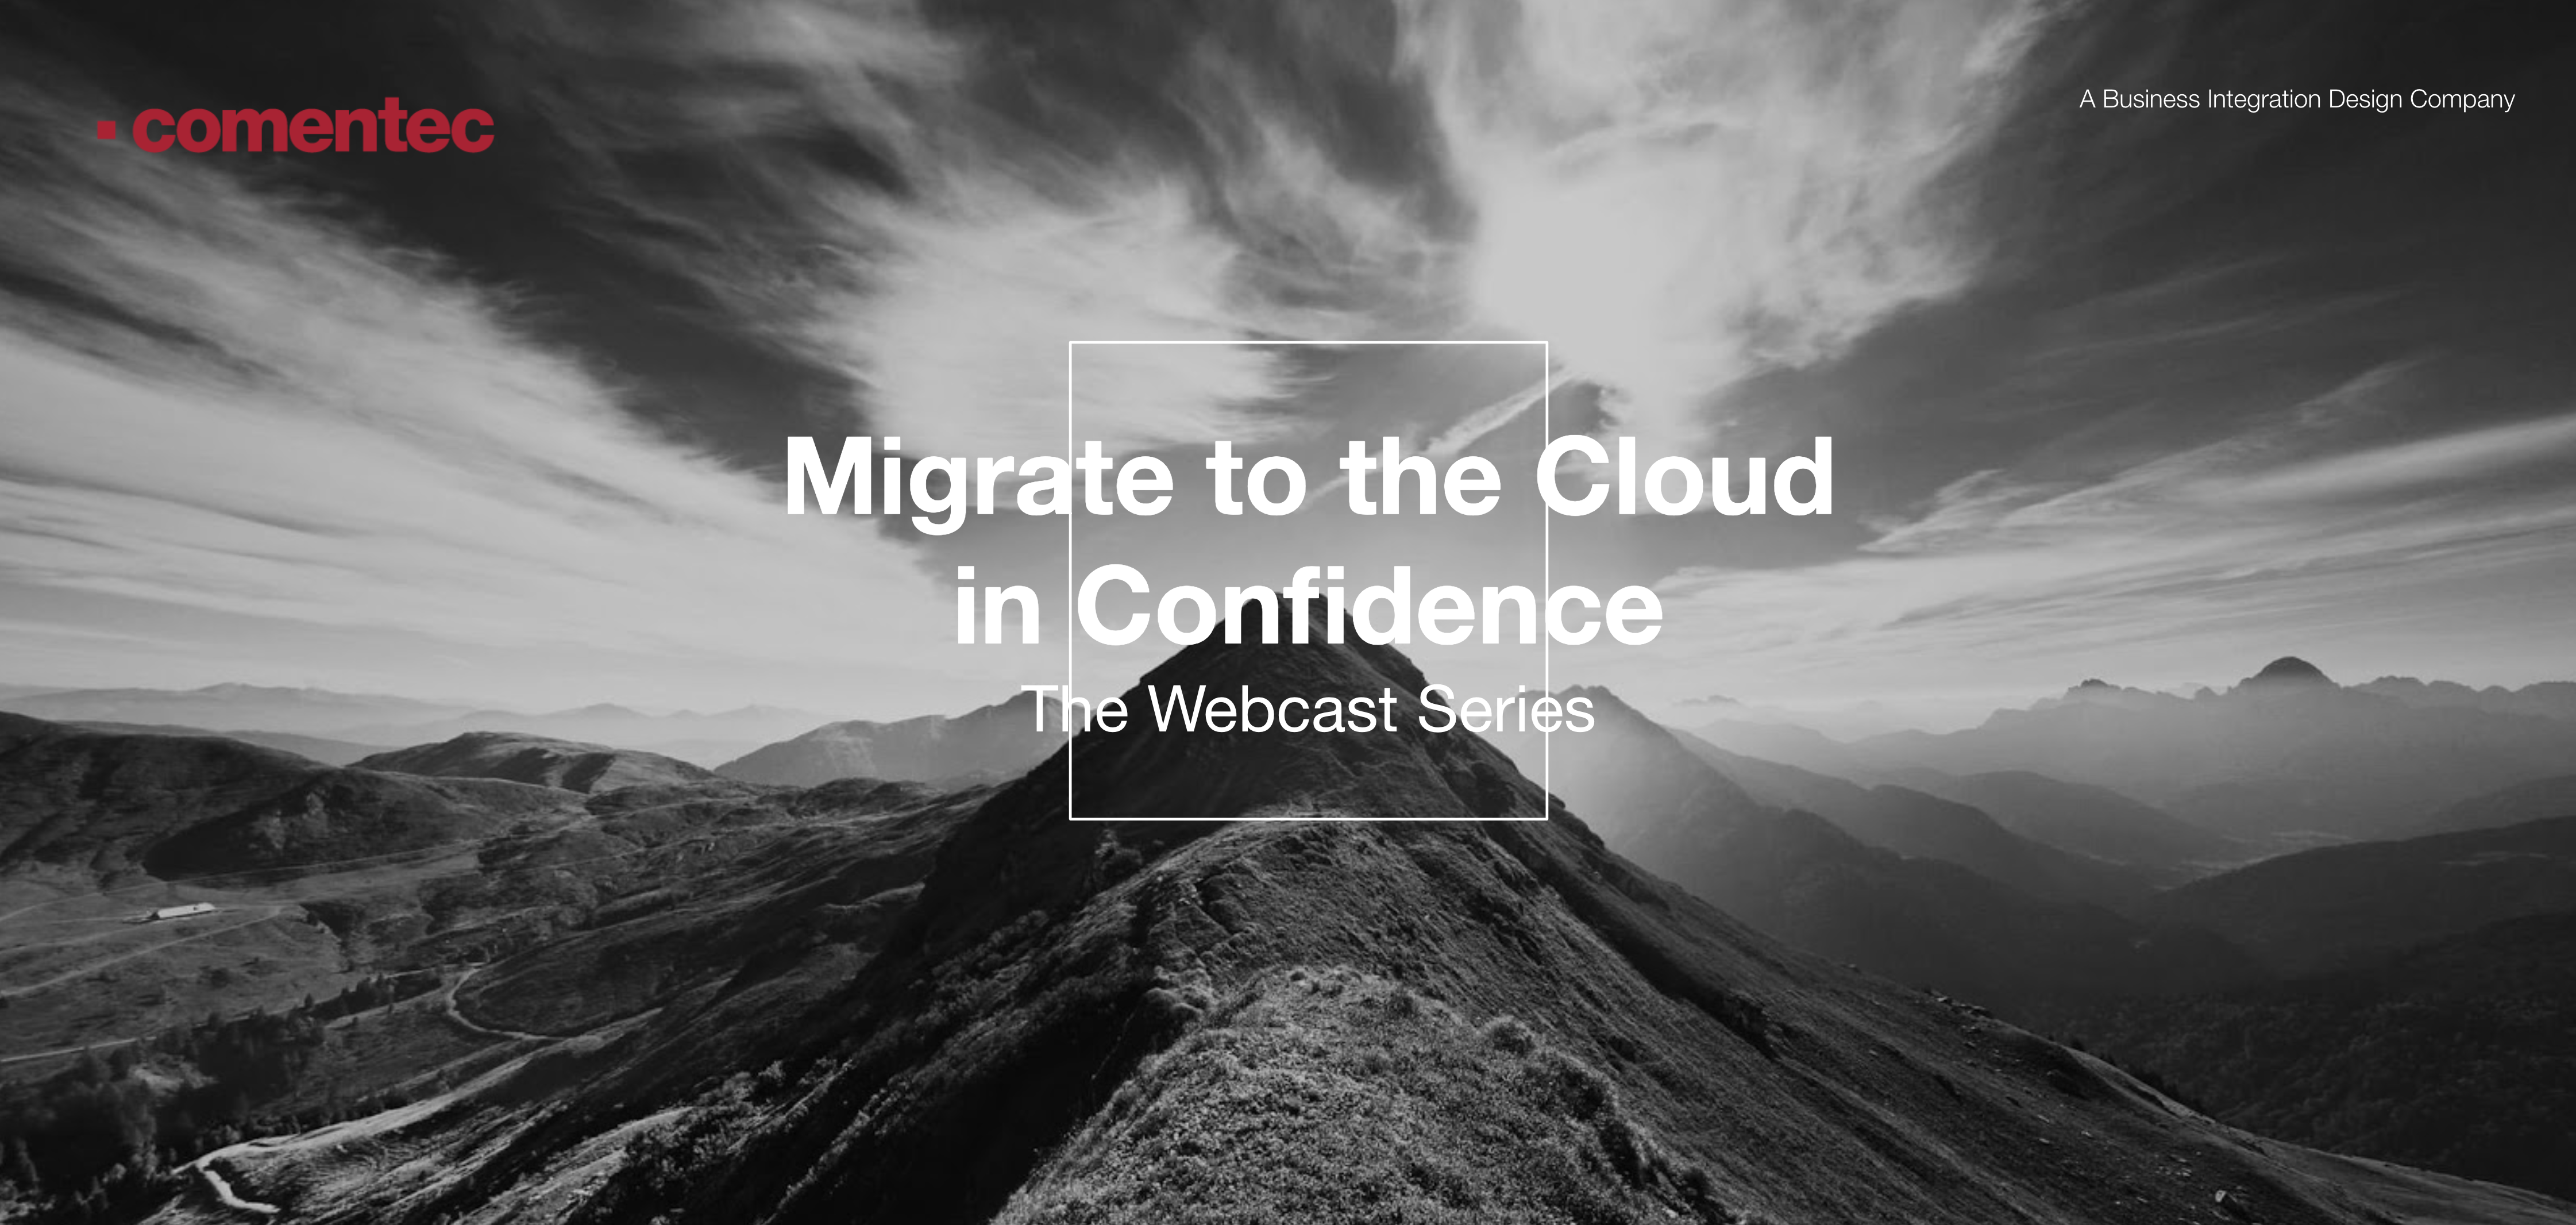 Comentec - Migrate to the cloud in confidence